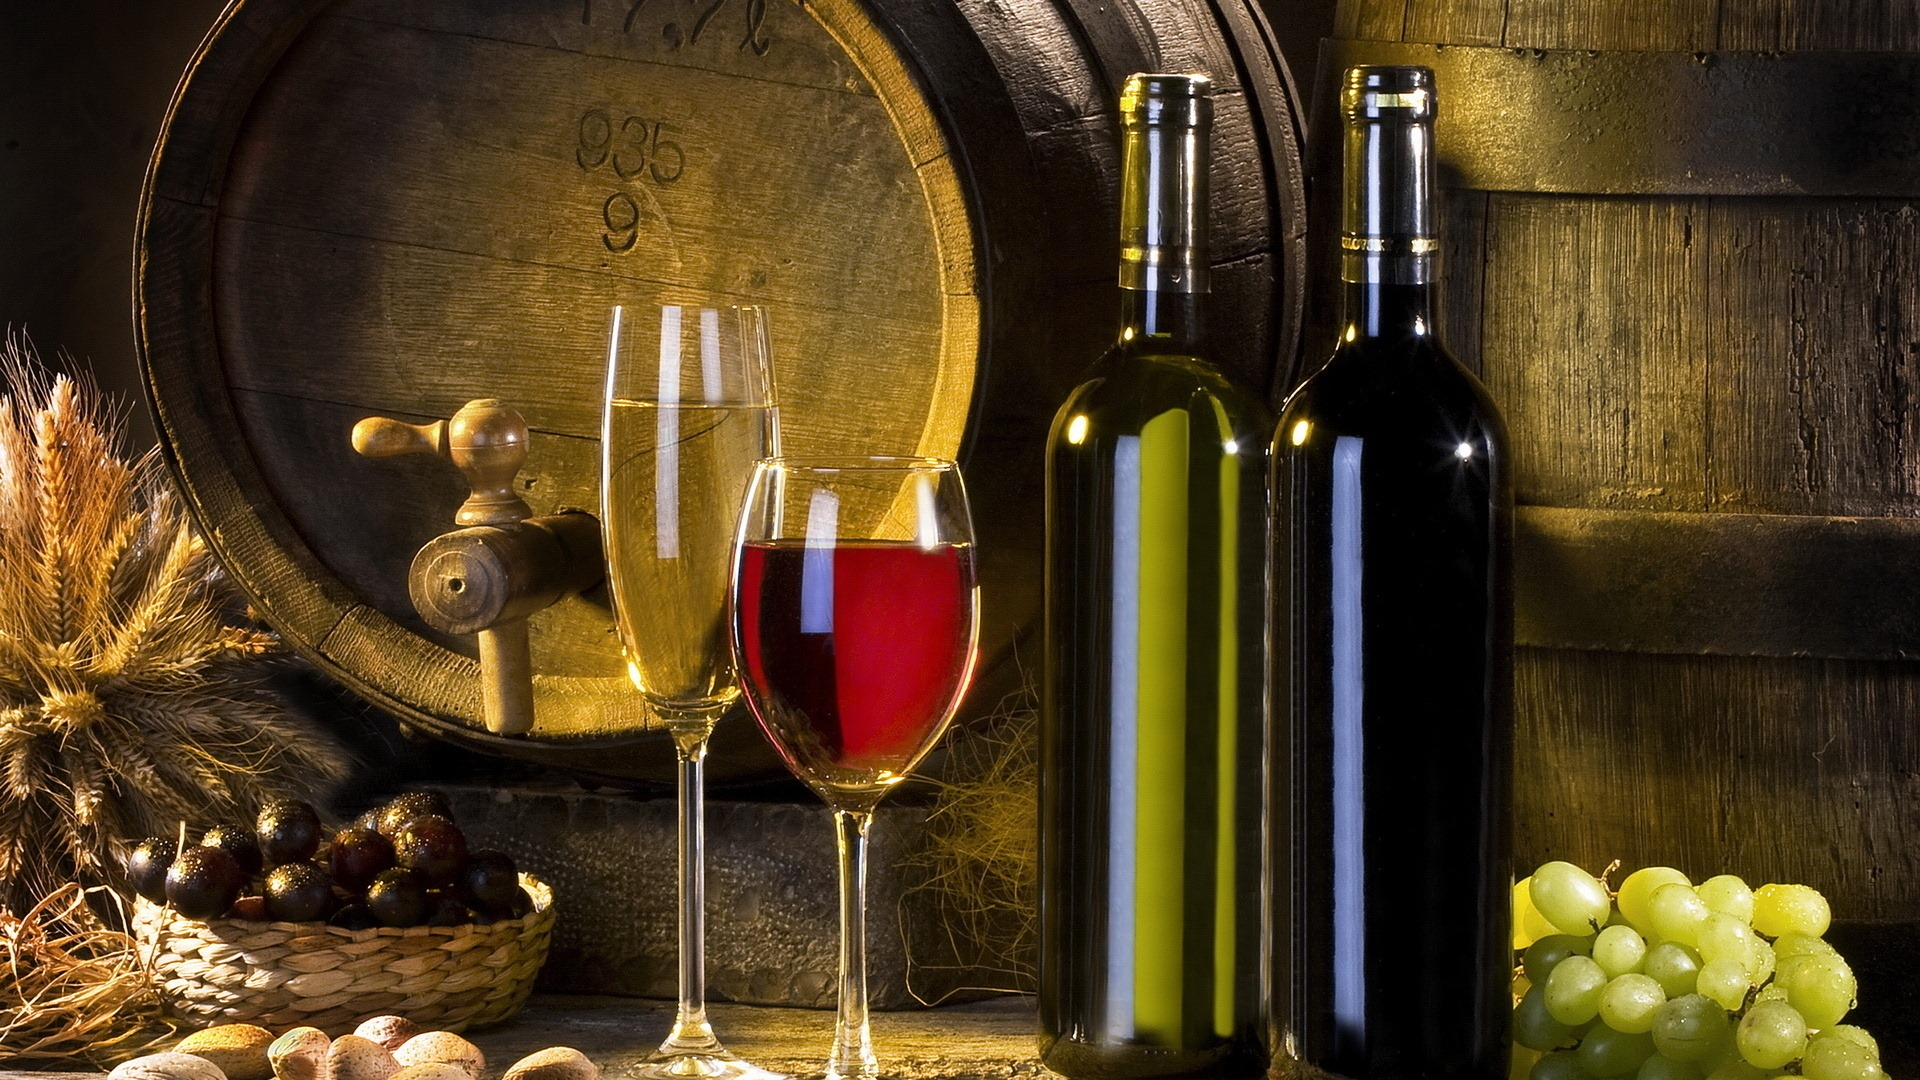 Hd 3d Wallpapers 1080p Widescreen Windows 7 Wine Wallpapers High Quality Download Free